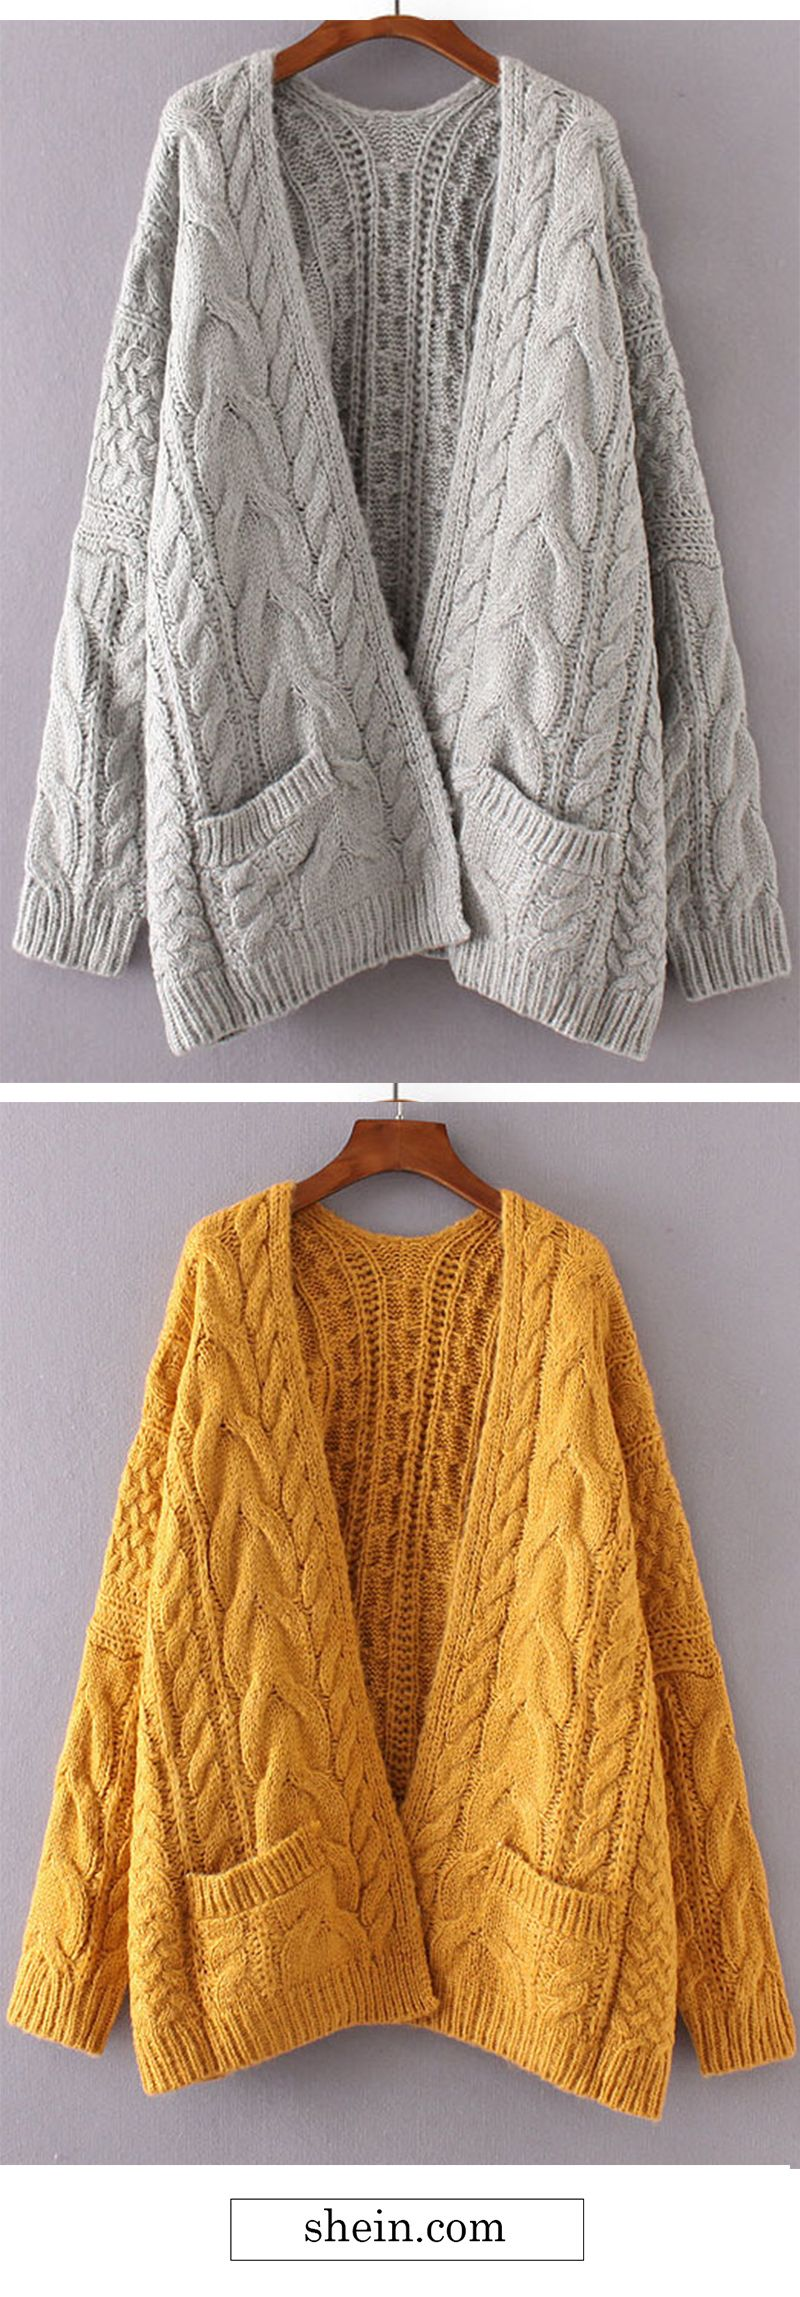 Drop shoulder cable knit cardigan. | Spotlights | Pinterest | Cable ...